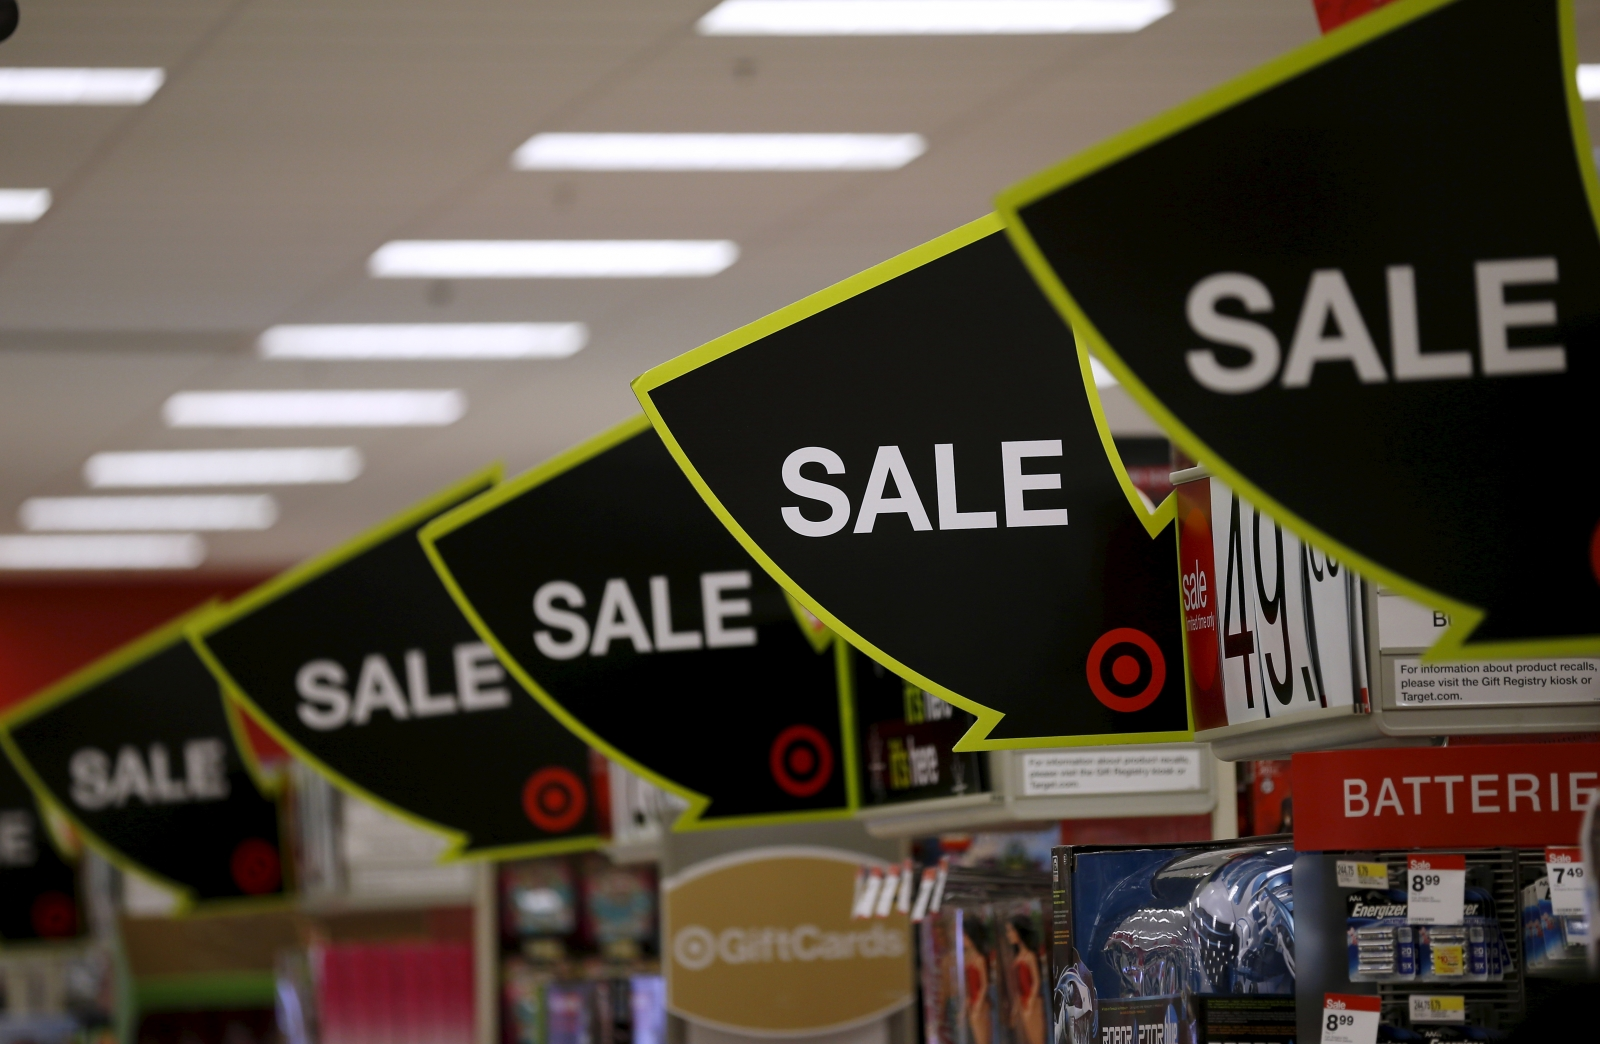 Black Friday 2016: When, where and how big will discounts be?